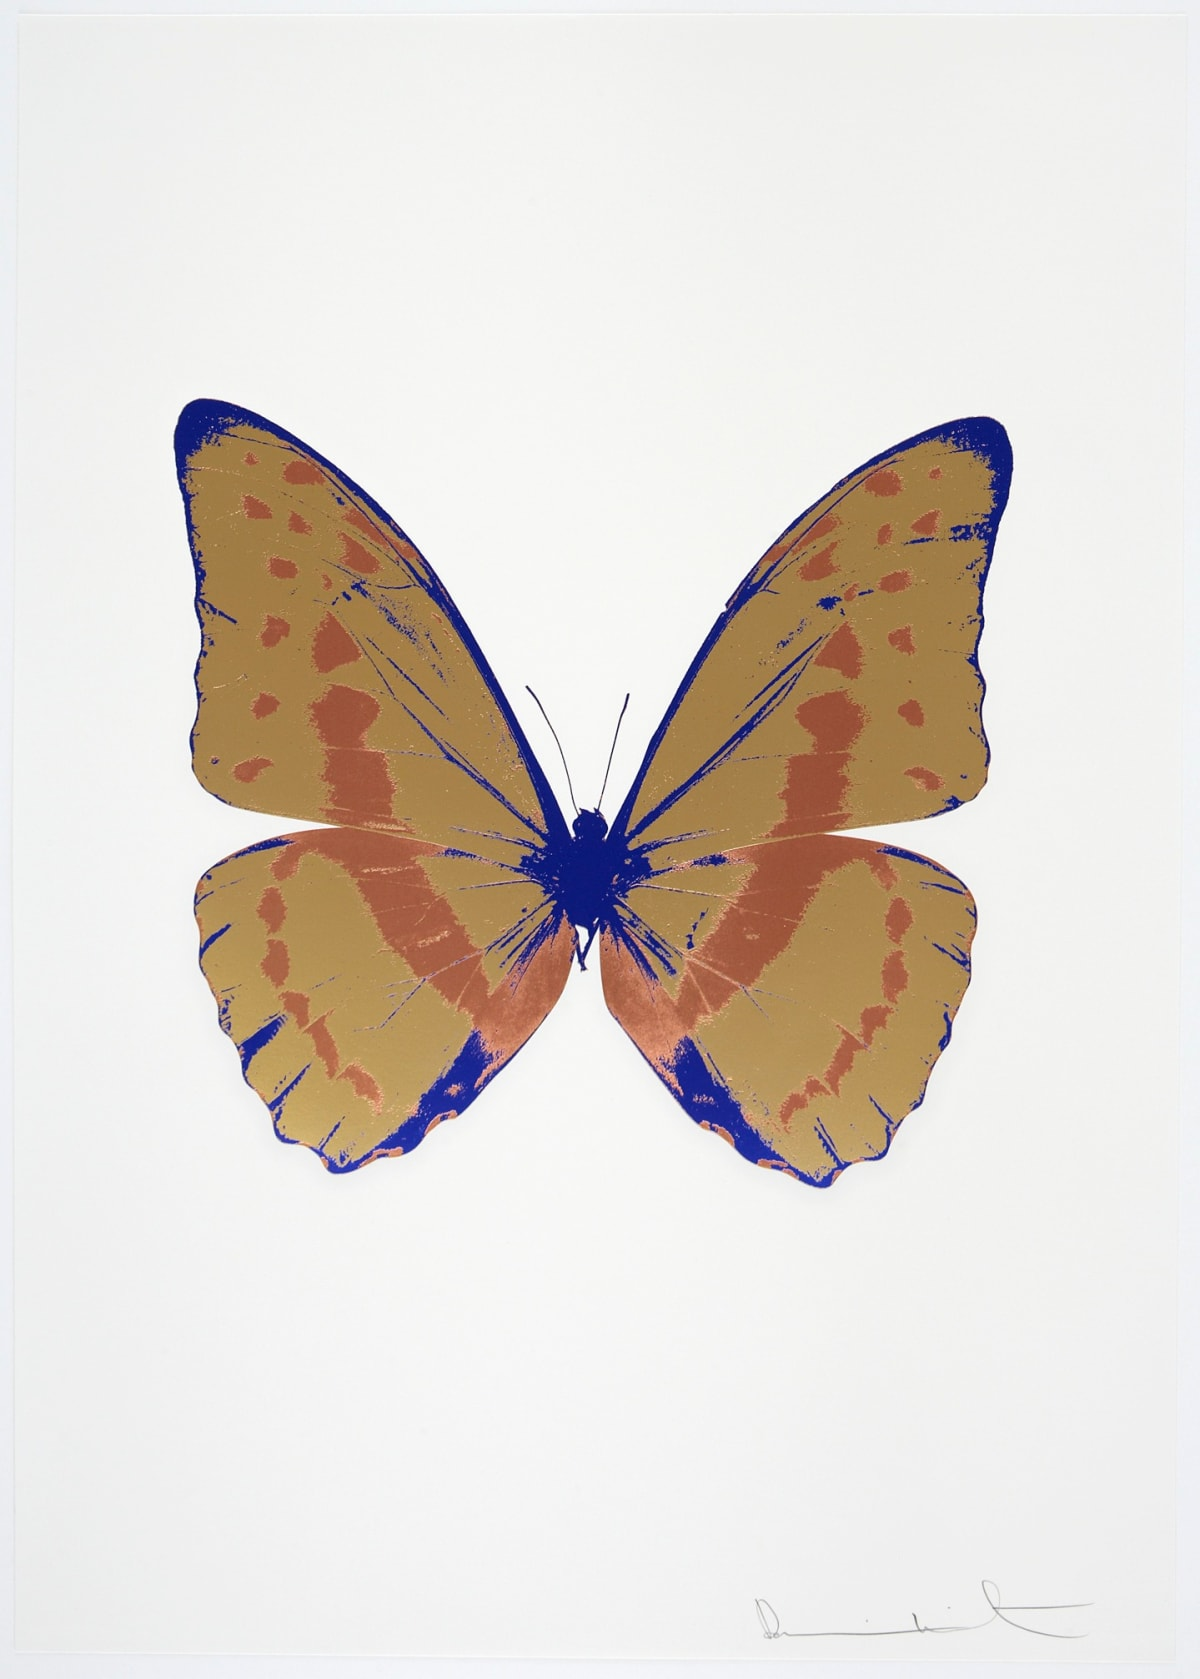 Damien Hirst The Souls III - Hazy Gold/Rustic Copper/Westminster Blue, 2010 3 colour foil block on 300gsm Arches 88 archival paper. Signed and numbered. Published by Paul Stolper and Other Criteria 72 x 51cm OC7911 / 660-14 Edition of 15